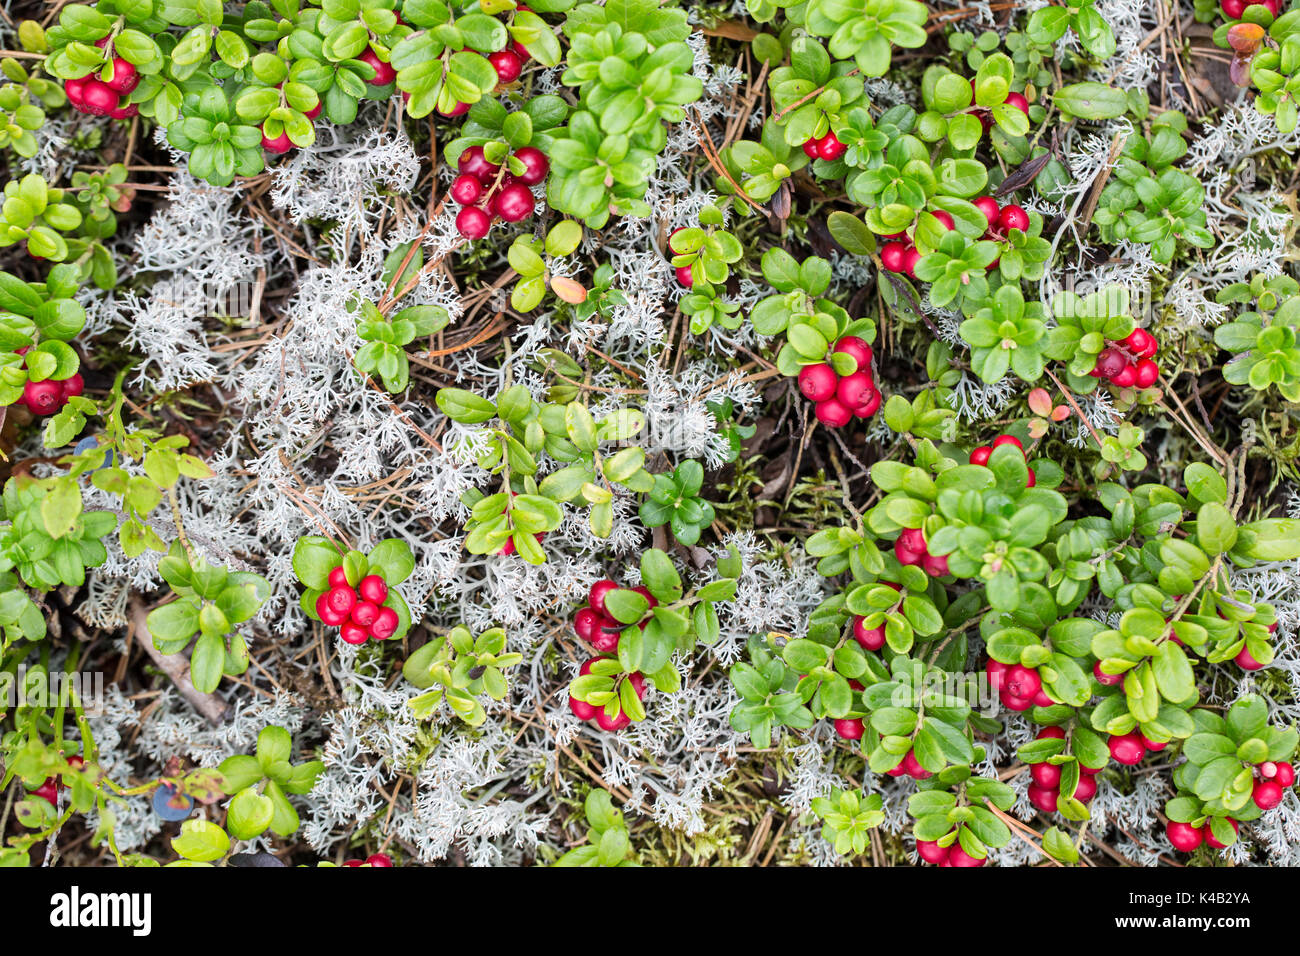 Scandinavian Forest Soil With Lingonberry - Stock Image